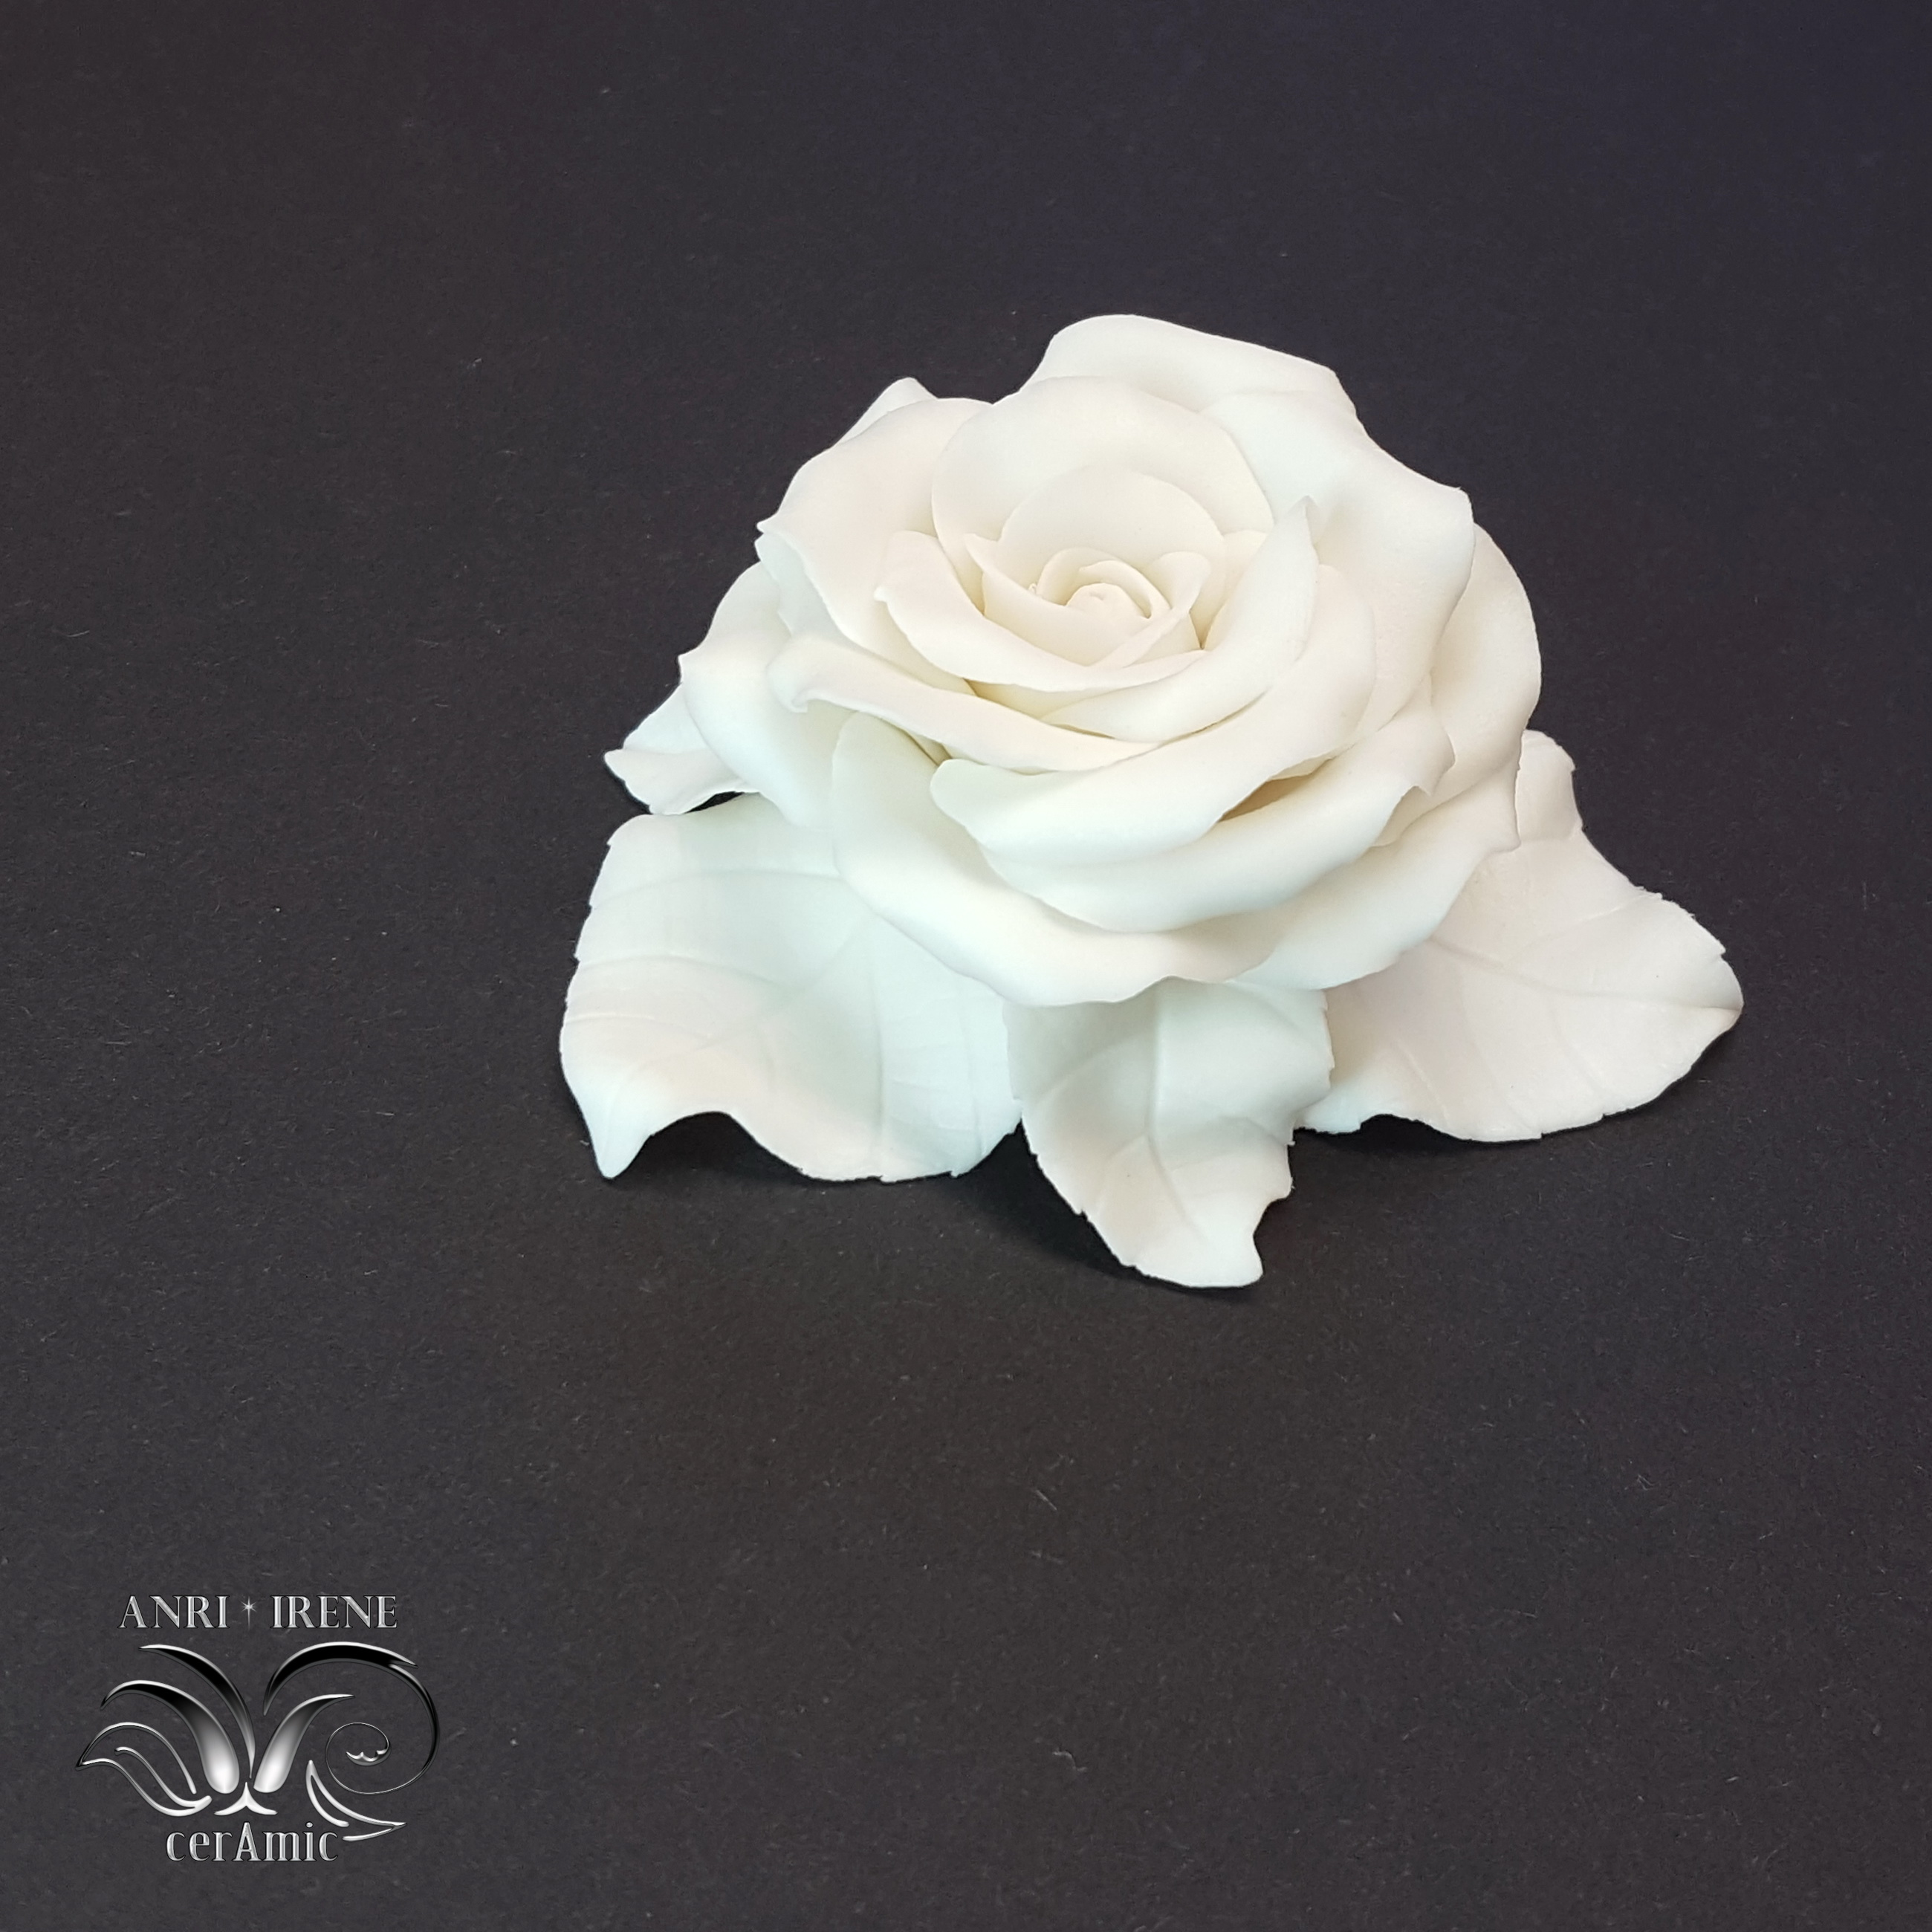 White porcelain rose